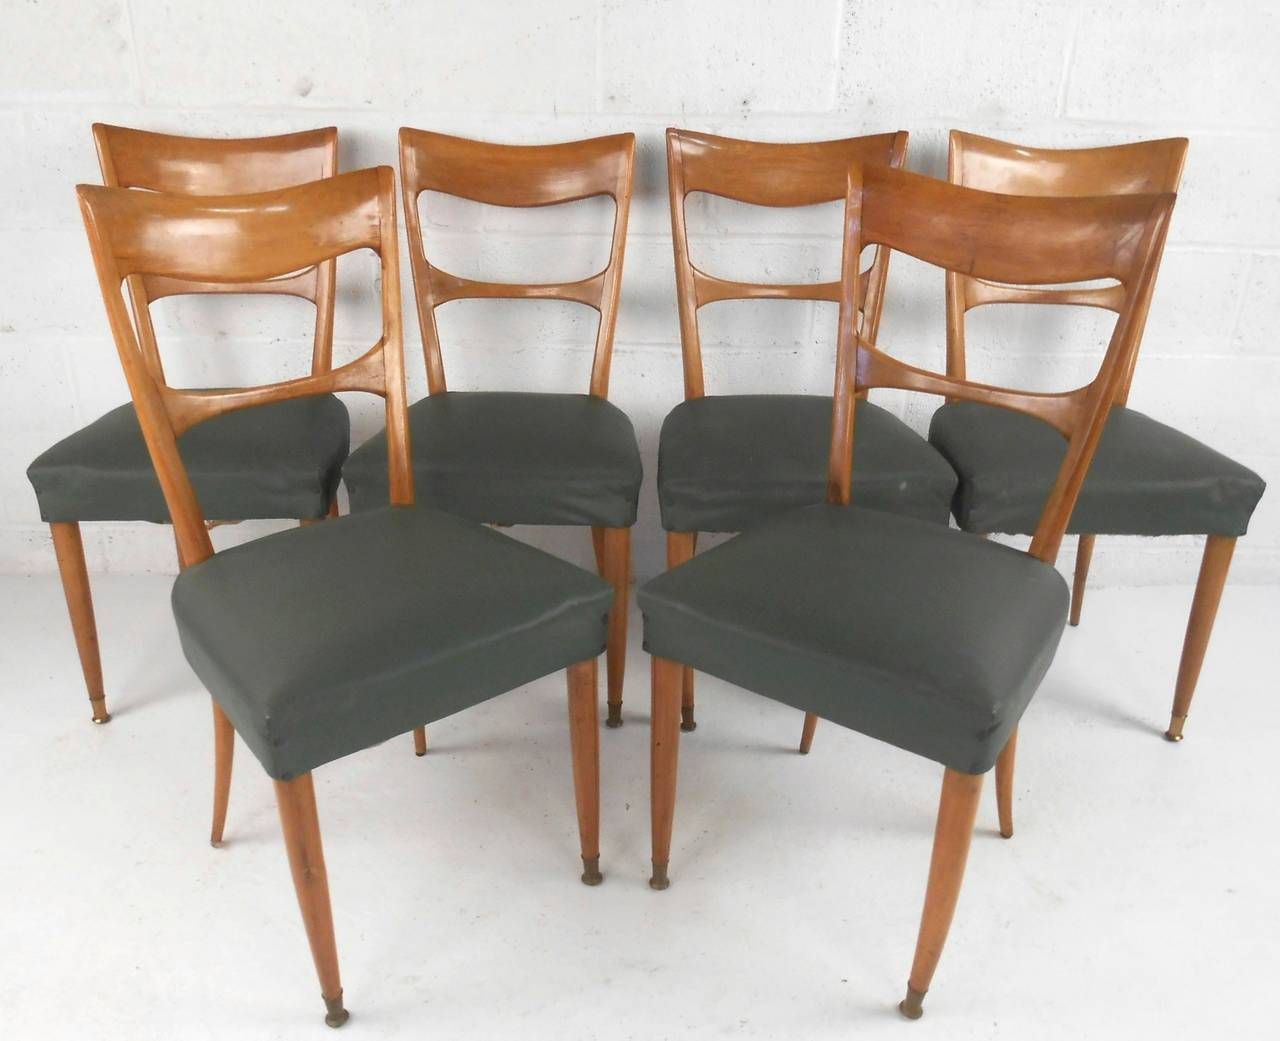 Sala Sedie ~ Melchiorre bega set of twelve dining chairs sale da pranzo